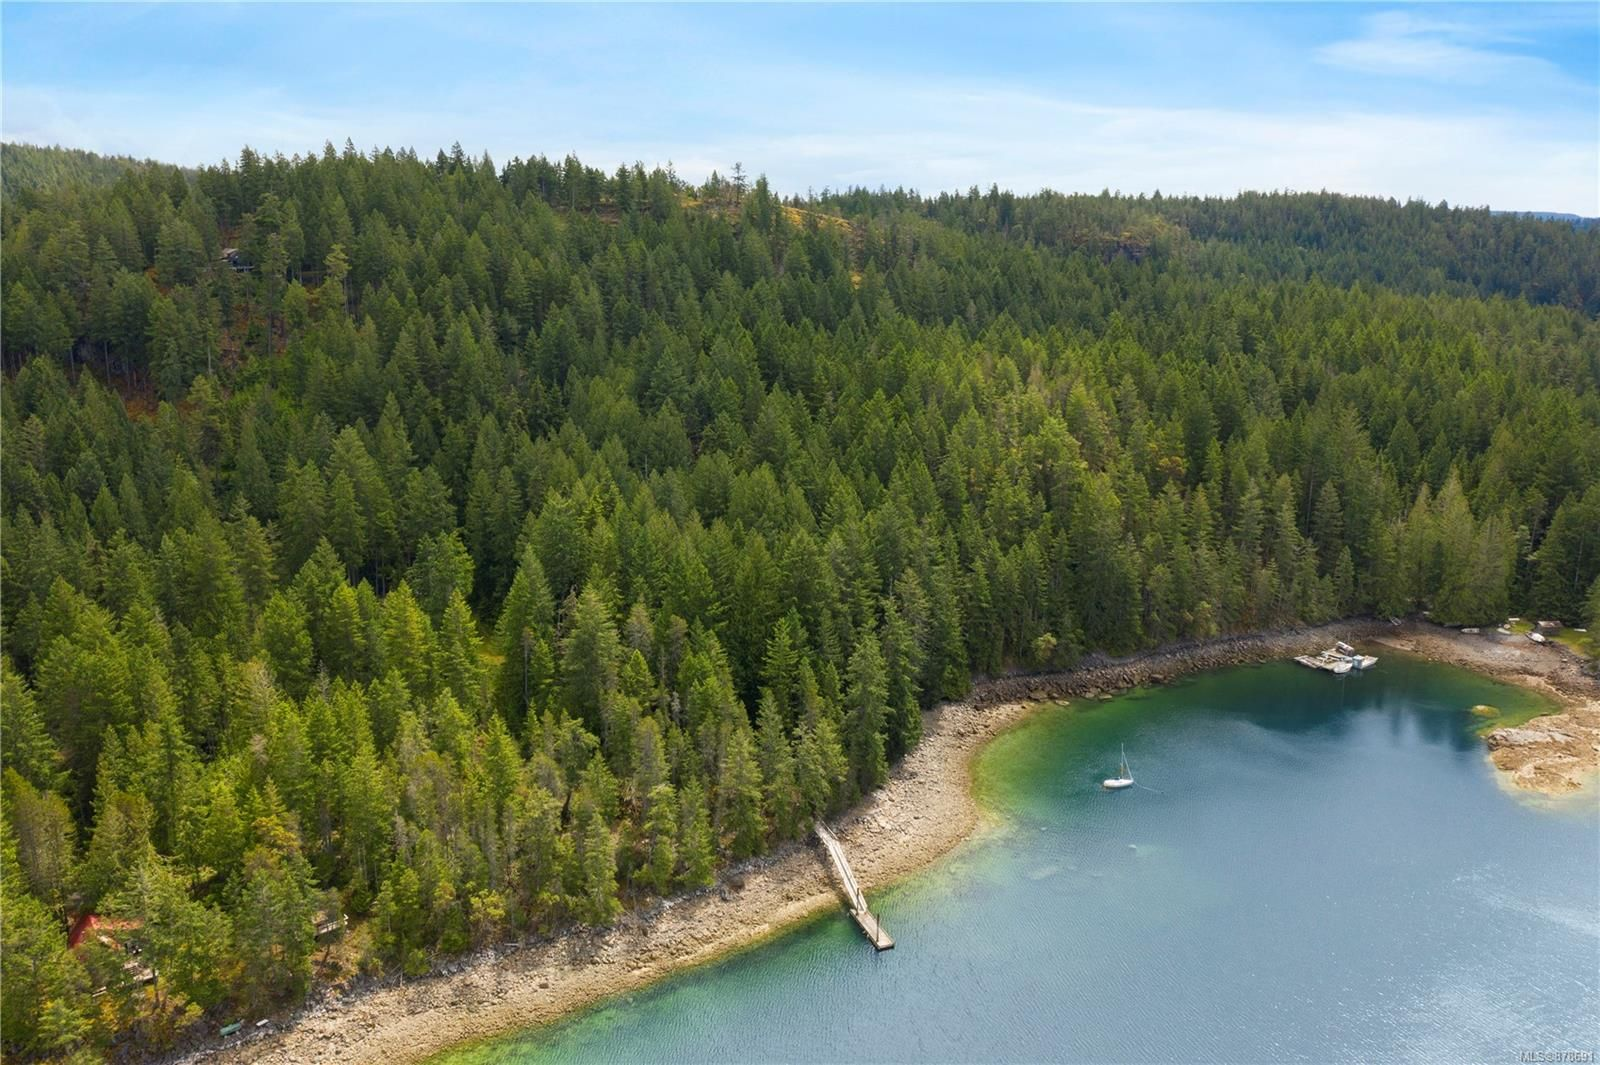 Photo 6: Photos: 979 Thunder Rd in : Isl Cortes Island House for sale (Islands)  : MLS®# 878691